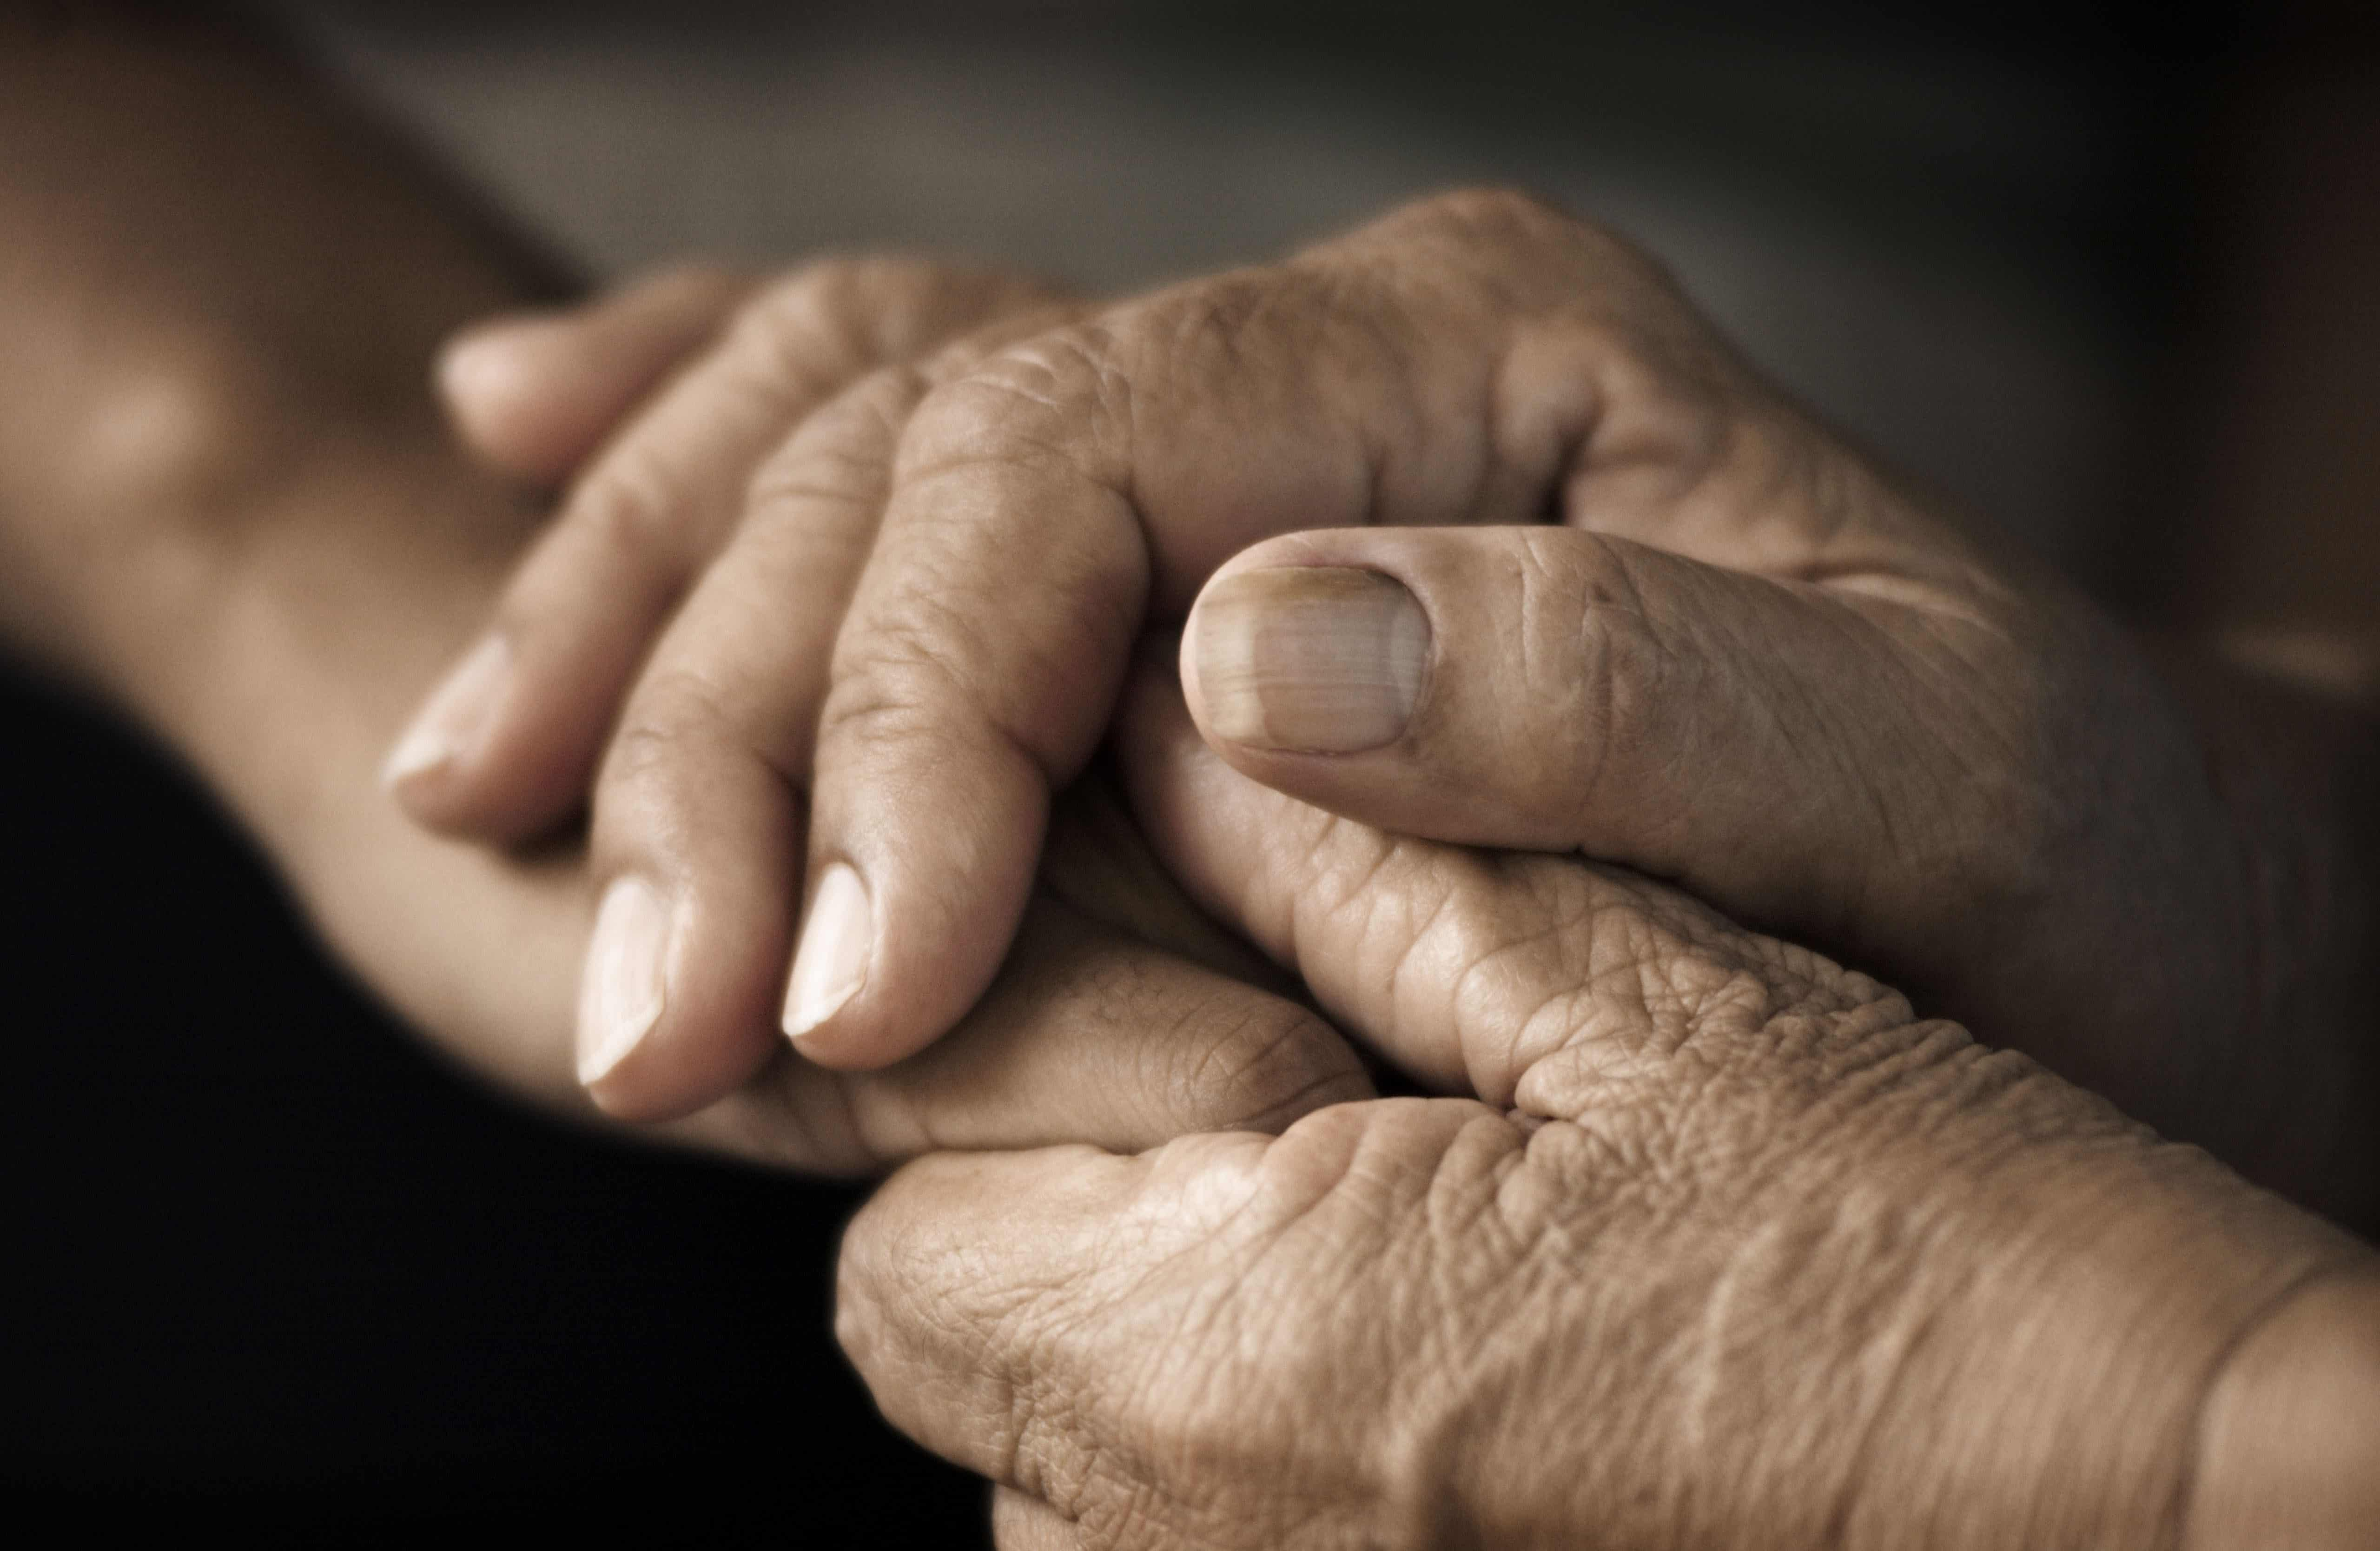 A photo of a paid of old hands, holding a younger person's hand